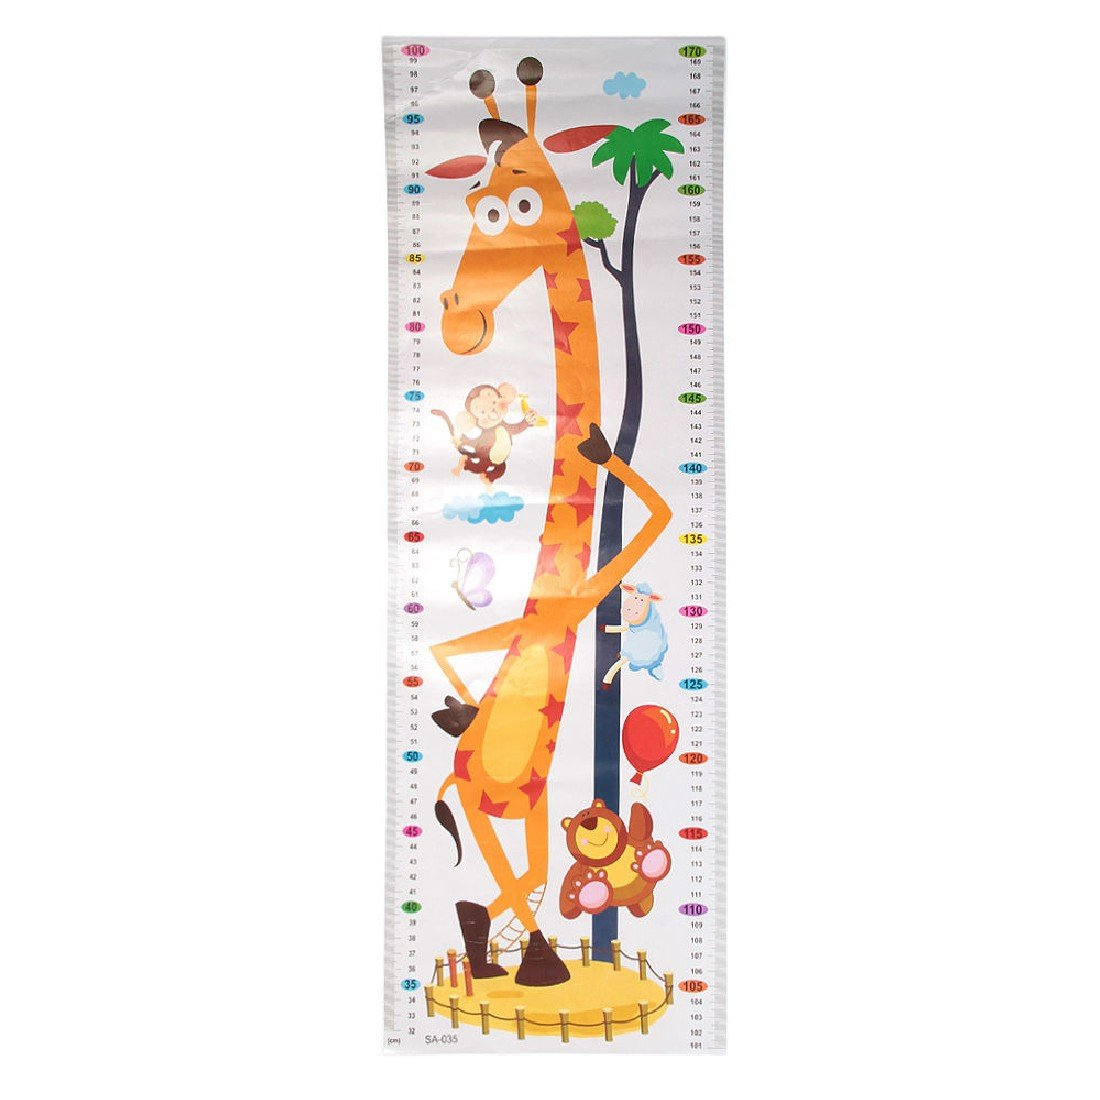 2015 Height Chart Growth Measure Decal Wall Sticker For Kids Art Mural Removable Cartoon Pvc For Decoration